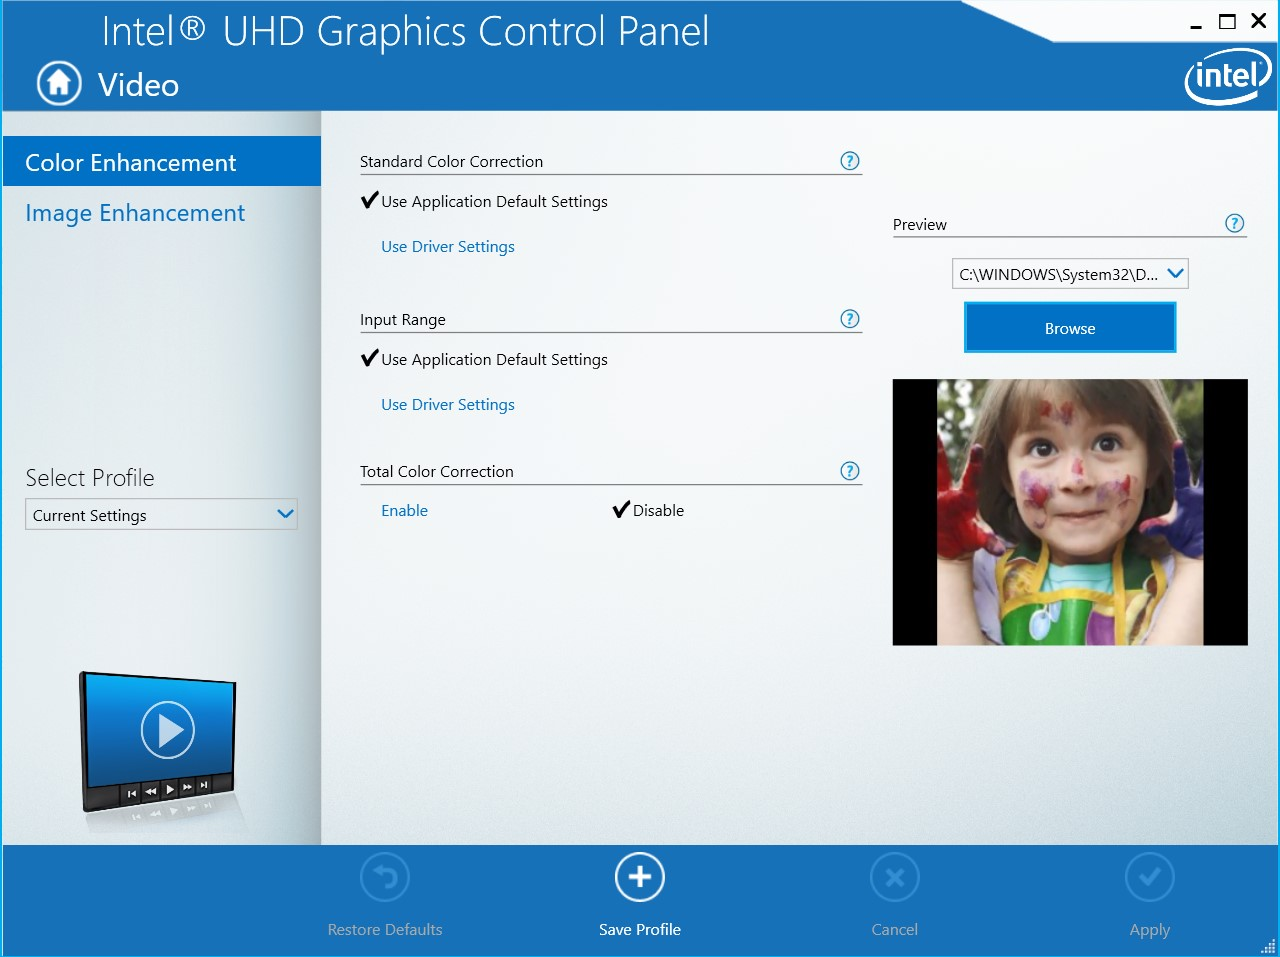 Intel Graphics Control Panel Video Settings page